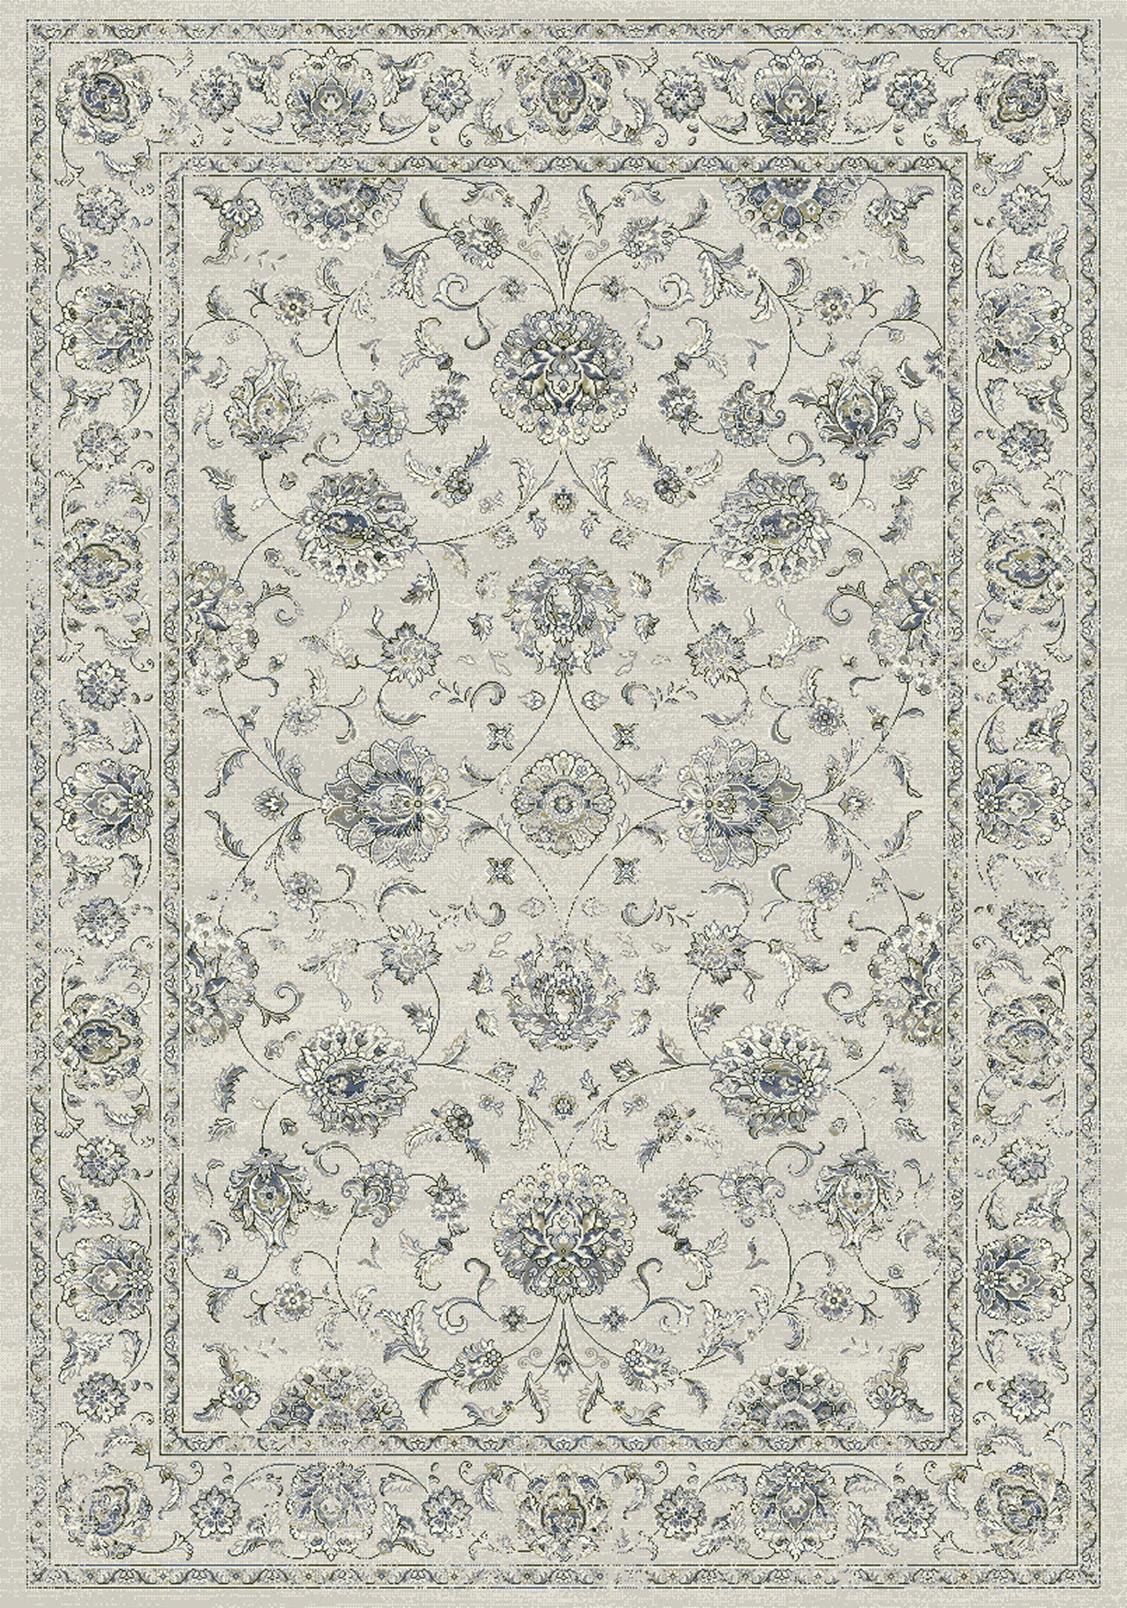 Ancient Garden 57126-6666 Cream Area Rug by Dynamic Rugs